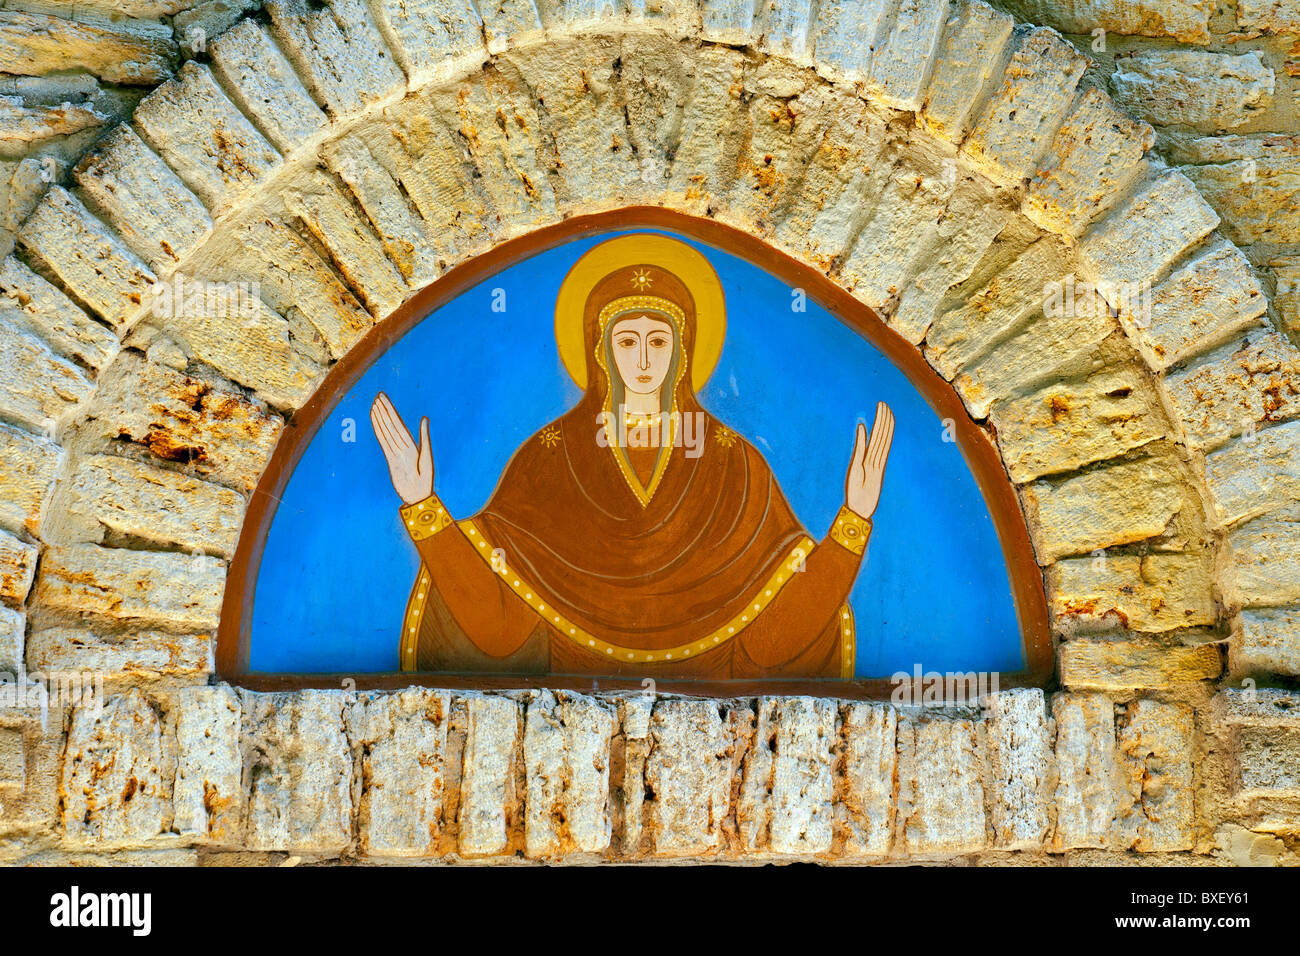 Decoration from the Stella Maris Chapel in Balchik, Bulgaria - Stock Image